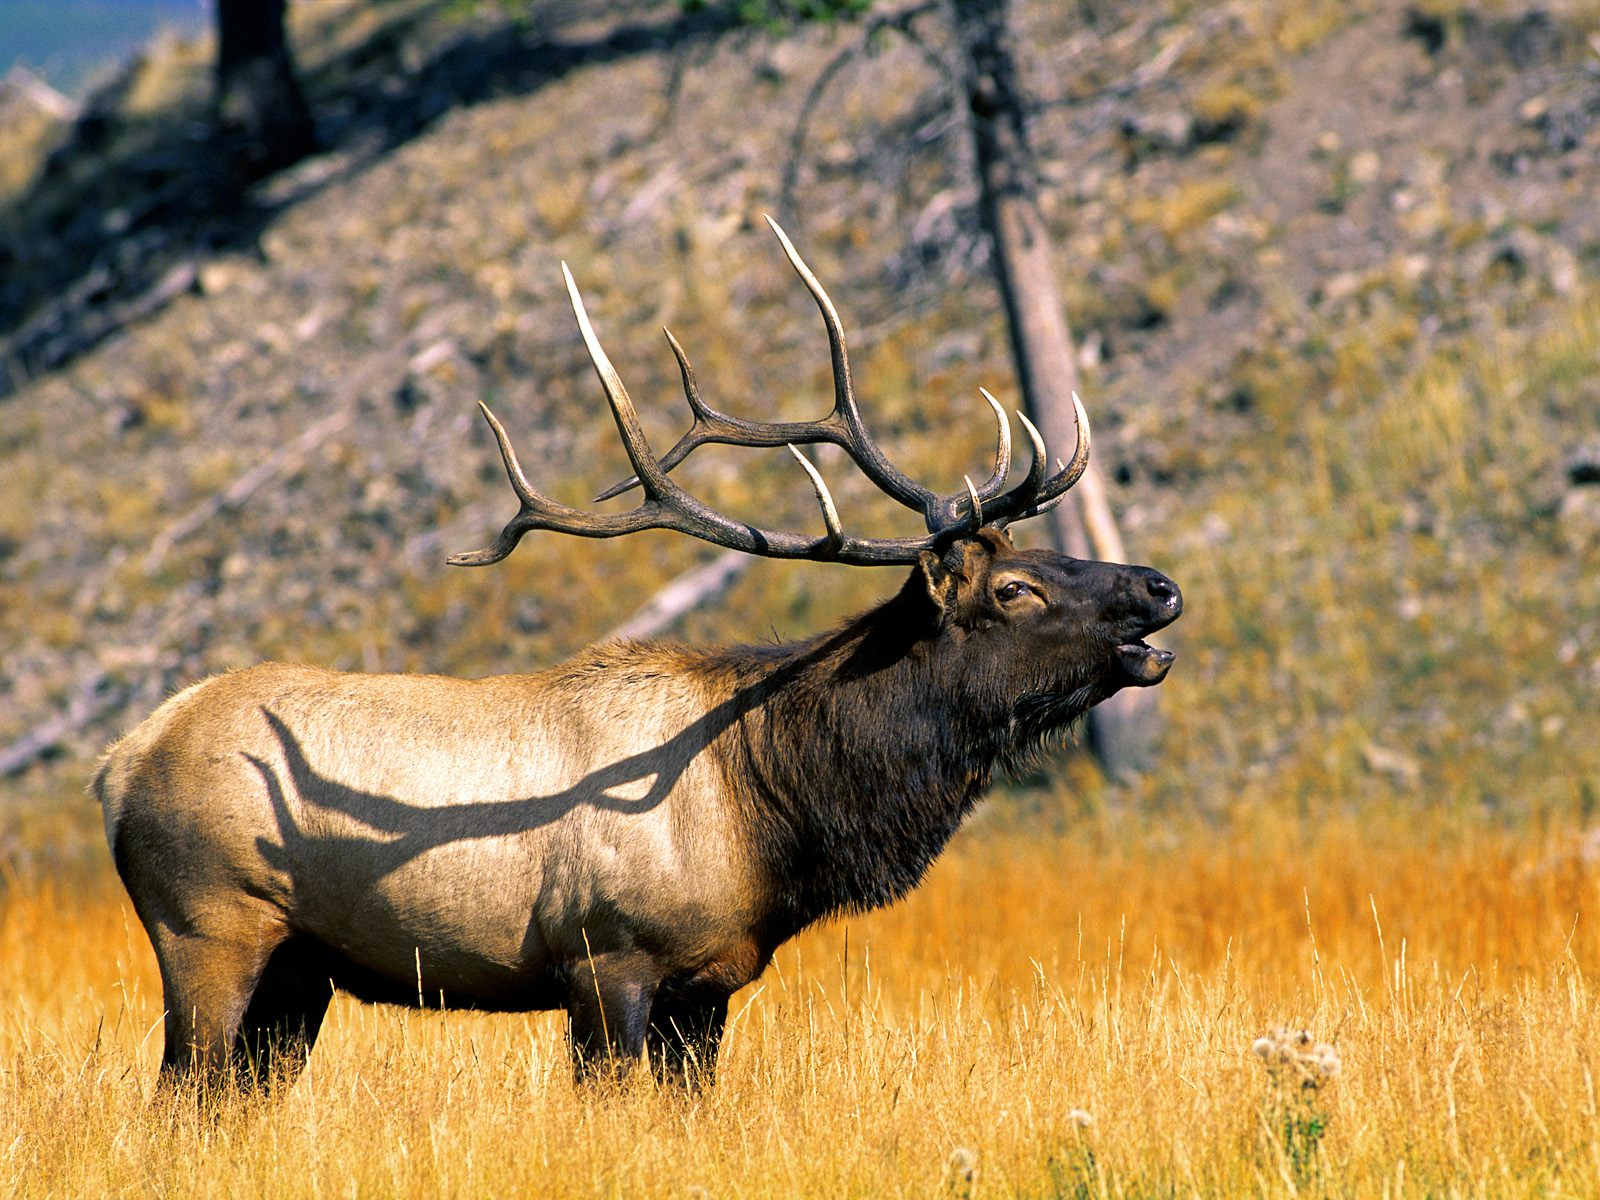 Wild Animals National Park Wyoming Free Image With Elk 401373 Wallpaper wallpaper